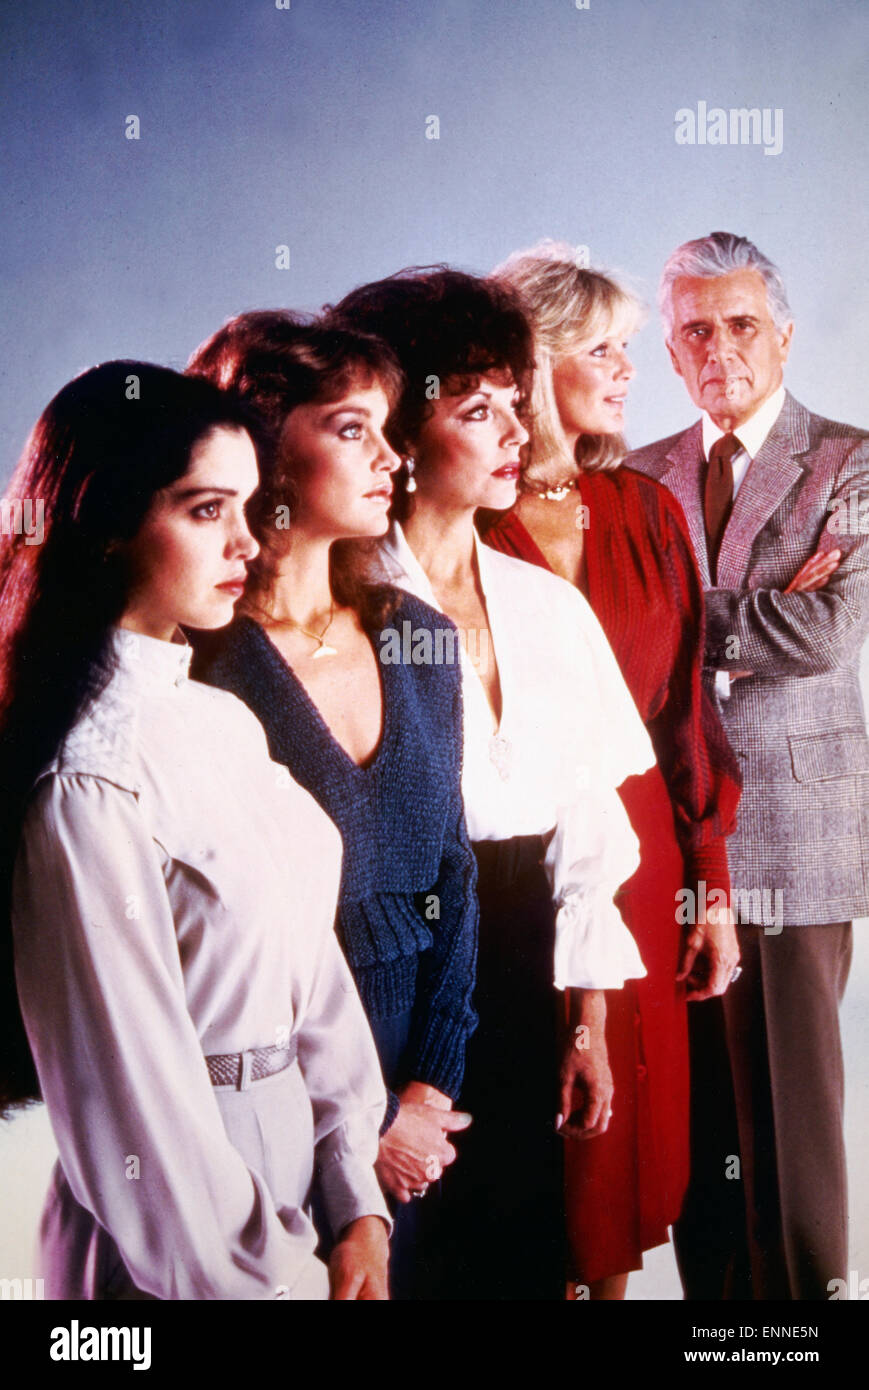 dynasty tv serie usa 1981 aka der denver clan regie esther stock photo 82221377 alamy. Black Bedroom Furniture Sets. Home Design Ideas